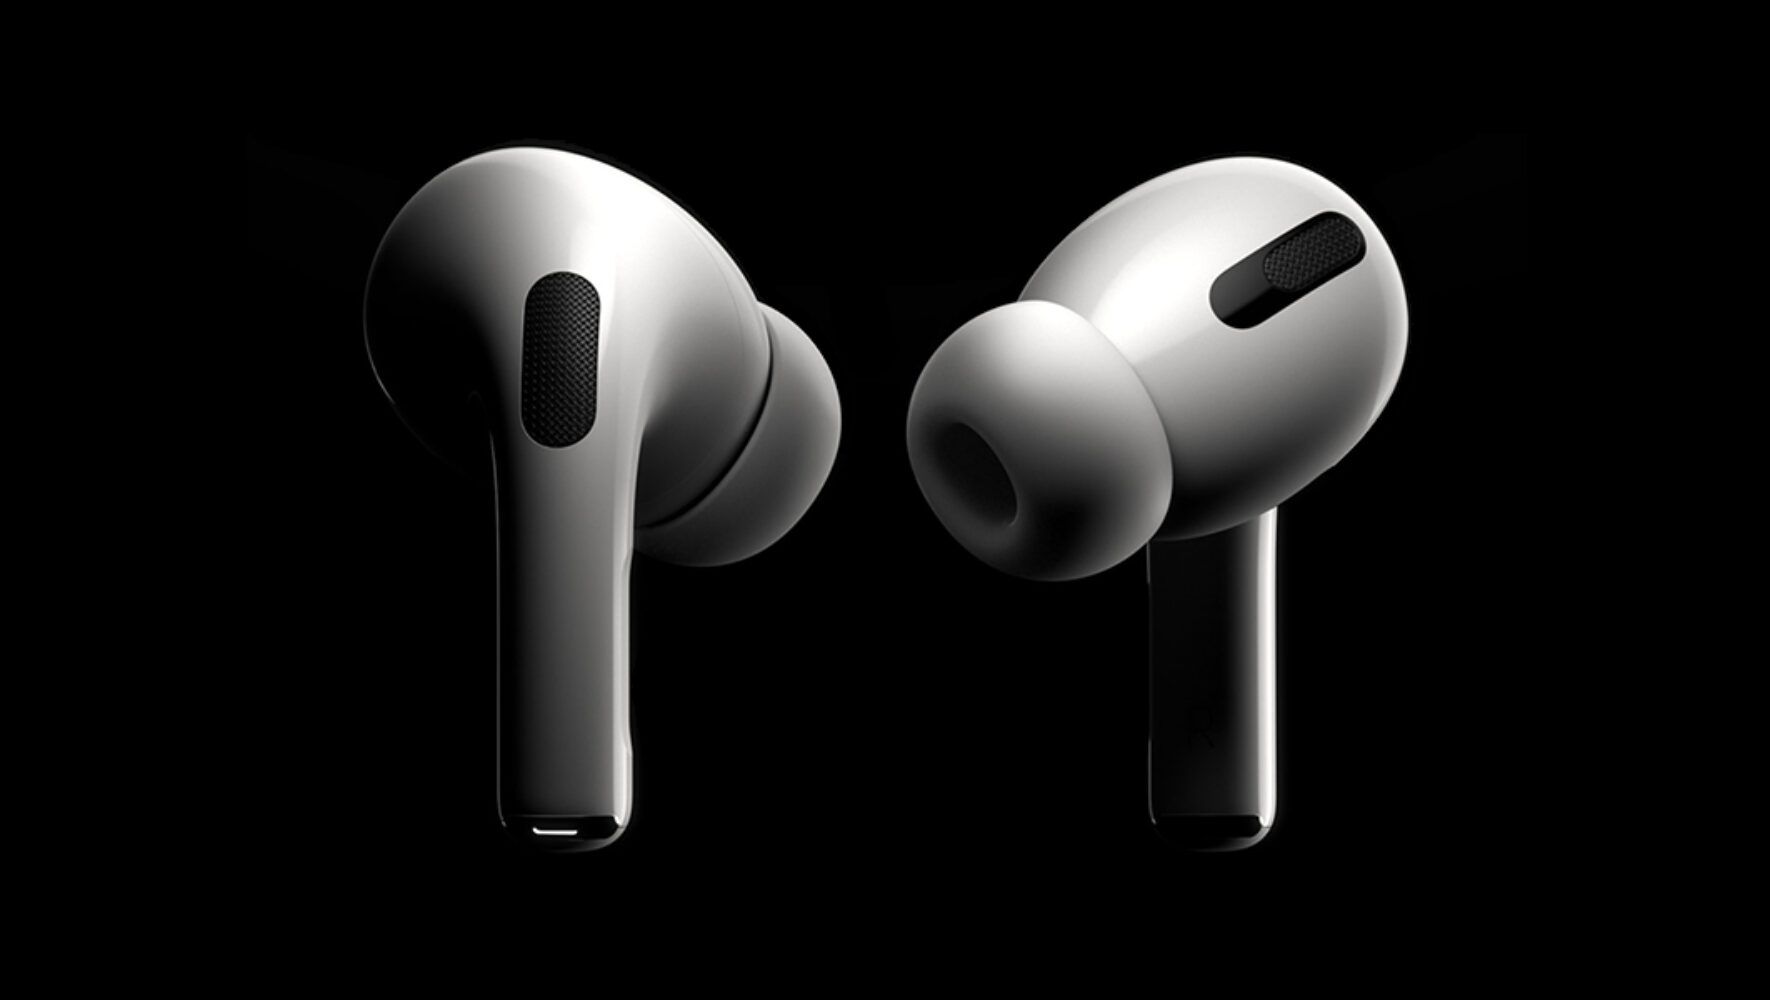 Apple Patent hints company working on Gesture Support for future Airpods